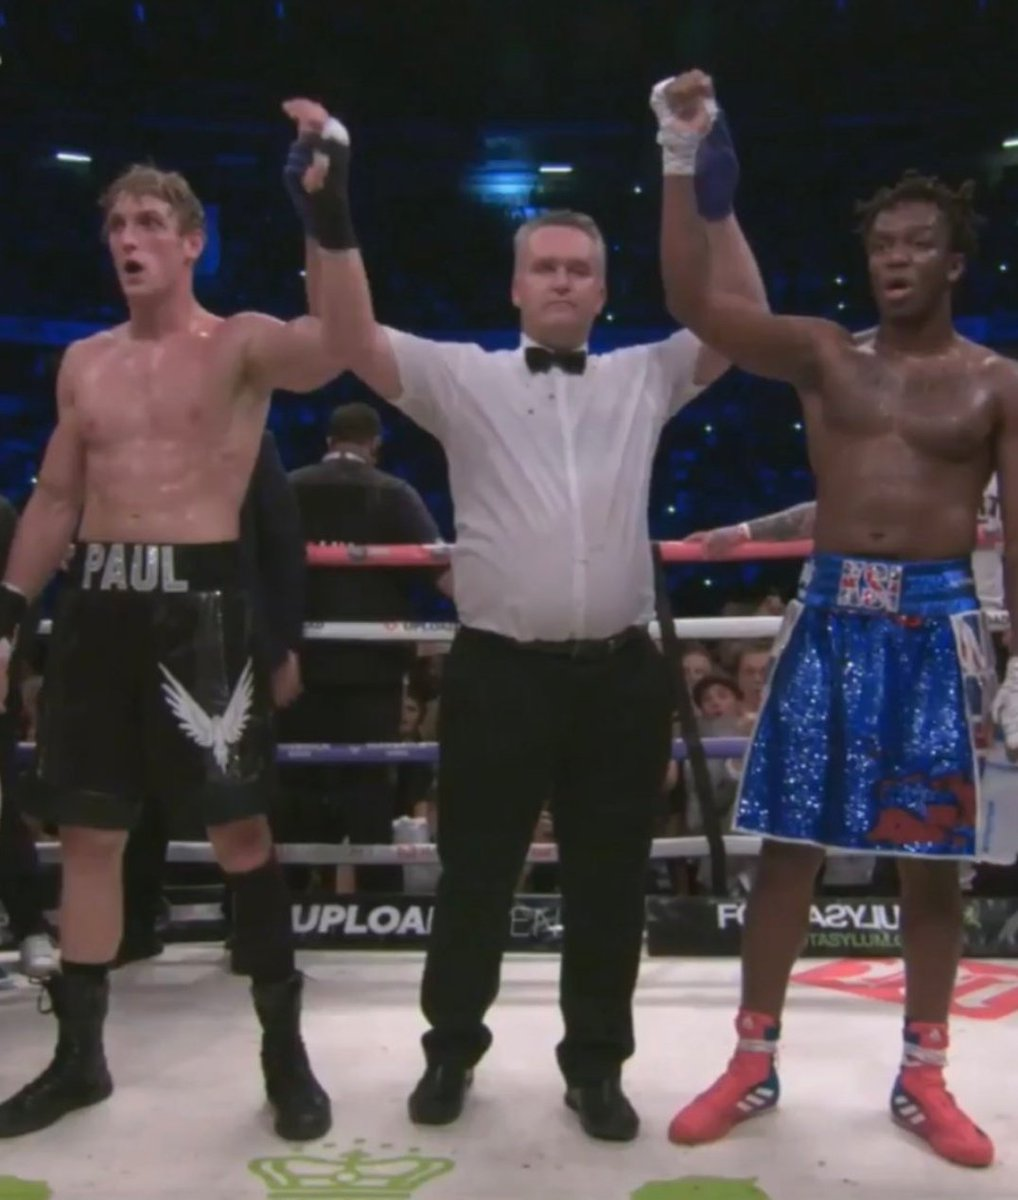 Logan Paul vs KSI YouTuber Boxing Match Ended Up in a Majority Draw Decision